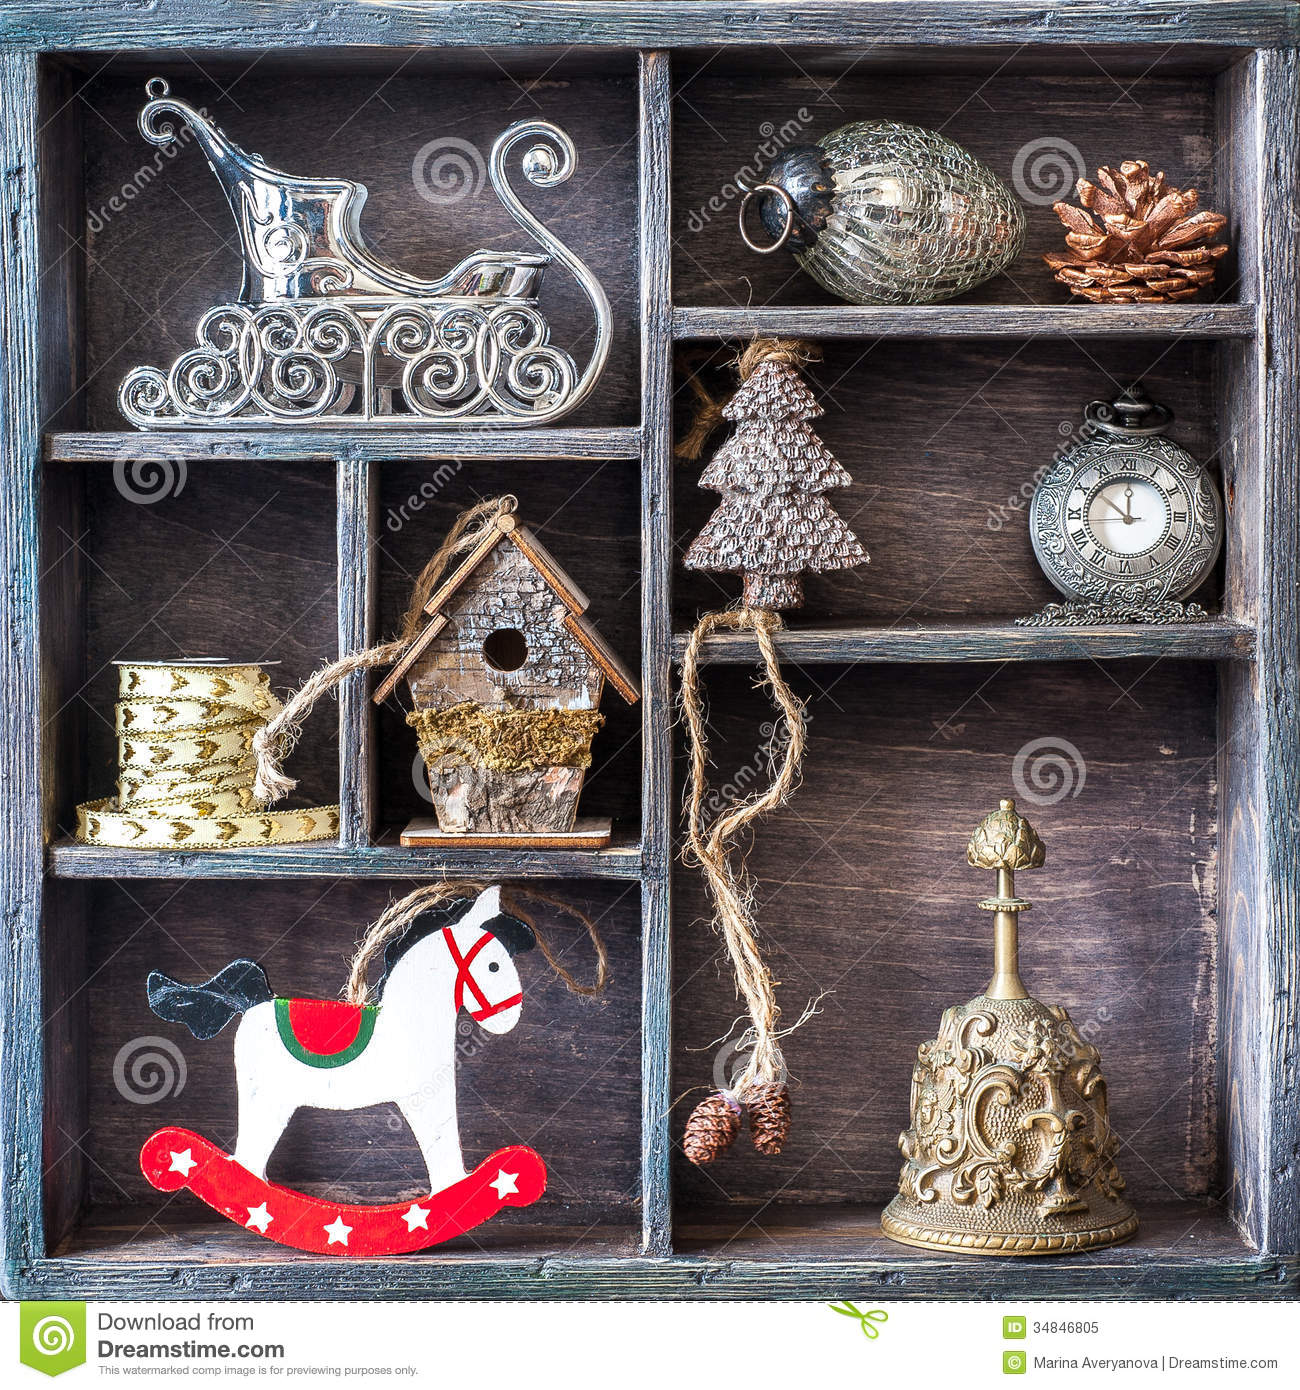 Christmas Retro Collage With Toys And Decorations Royalty